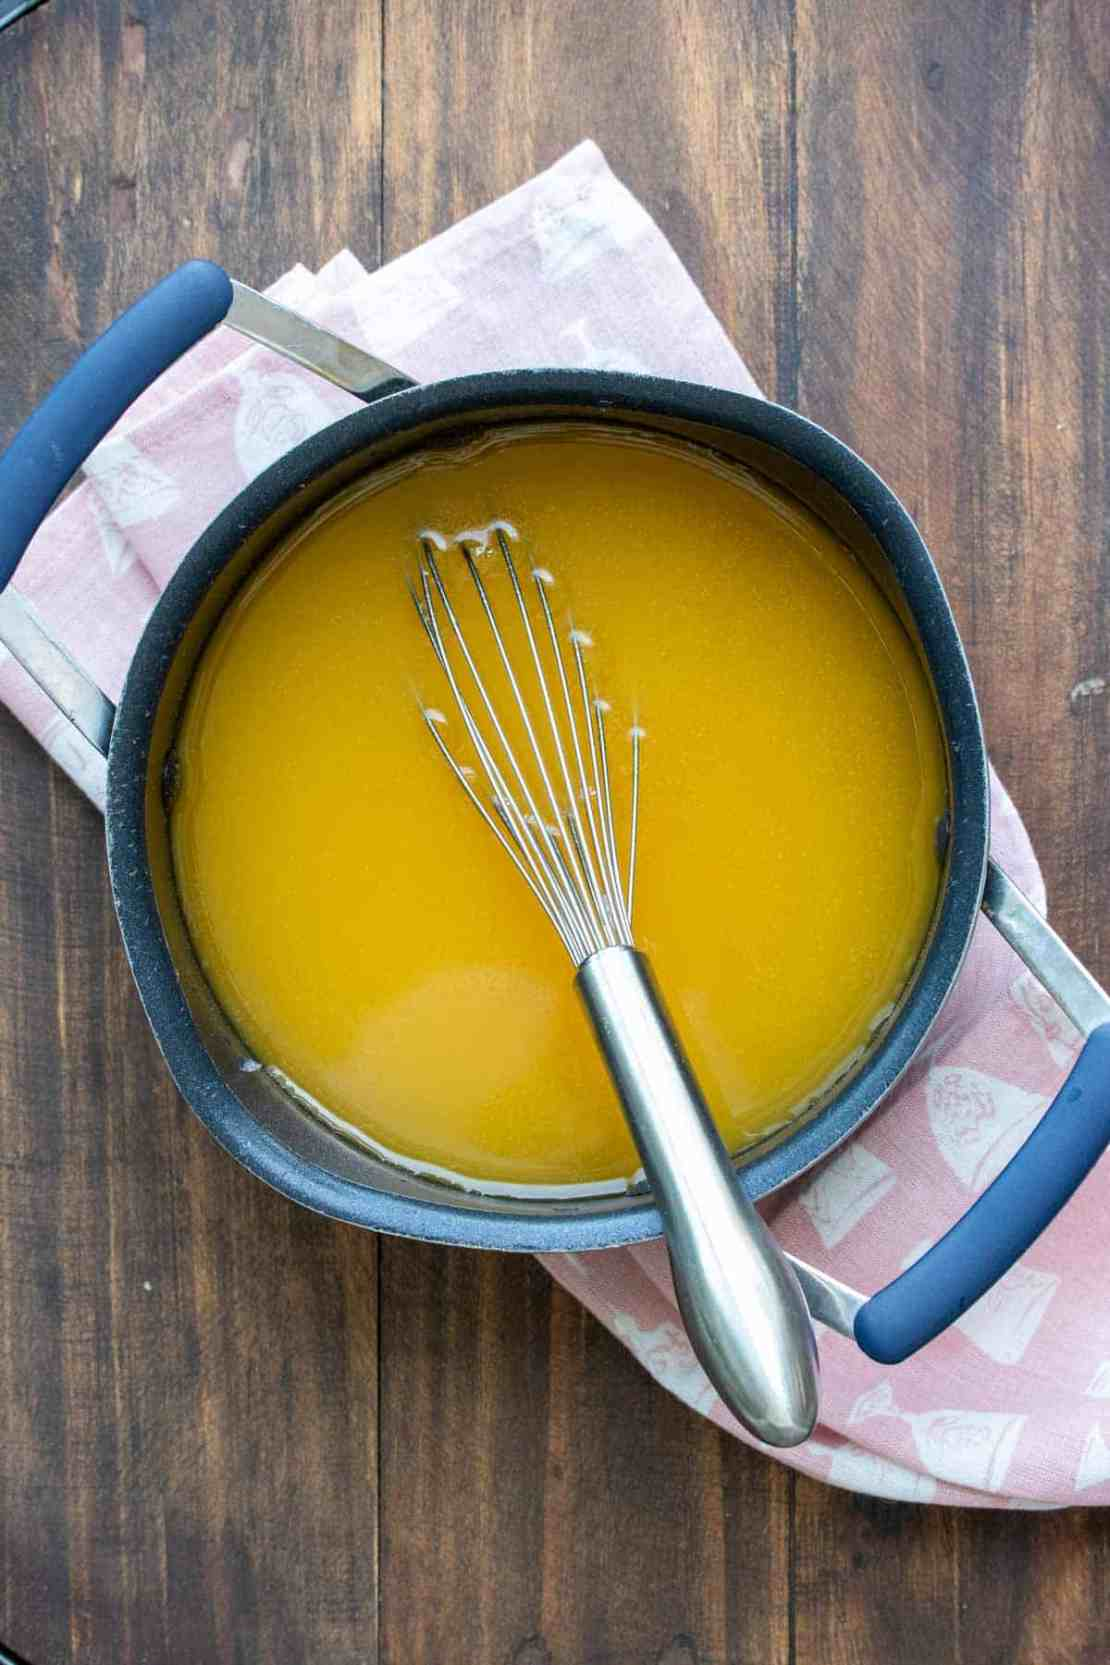 Whisk mixing an orange liquid in a black pot on a wooden surface